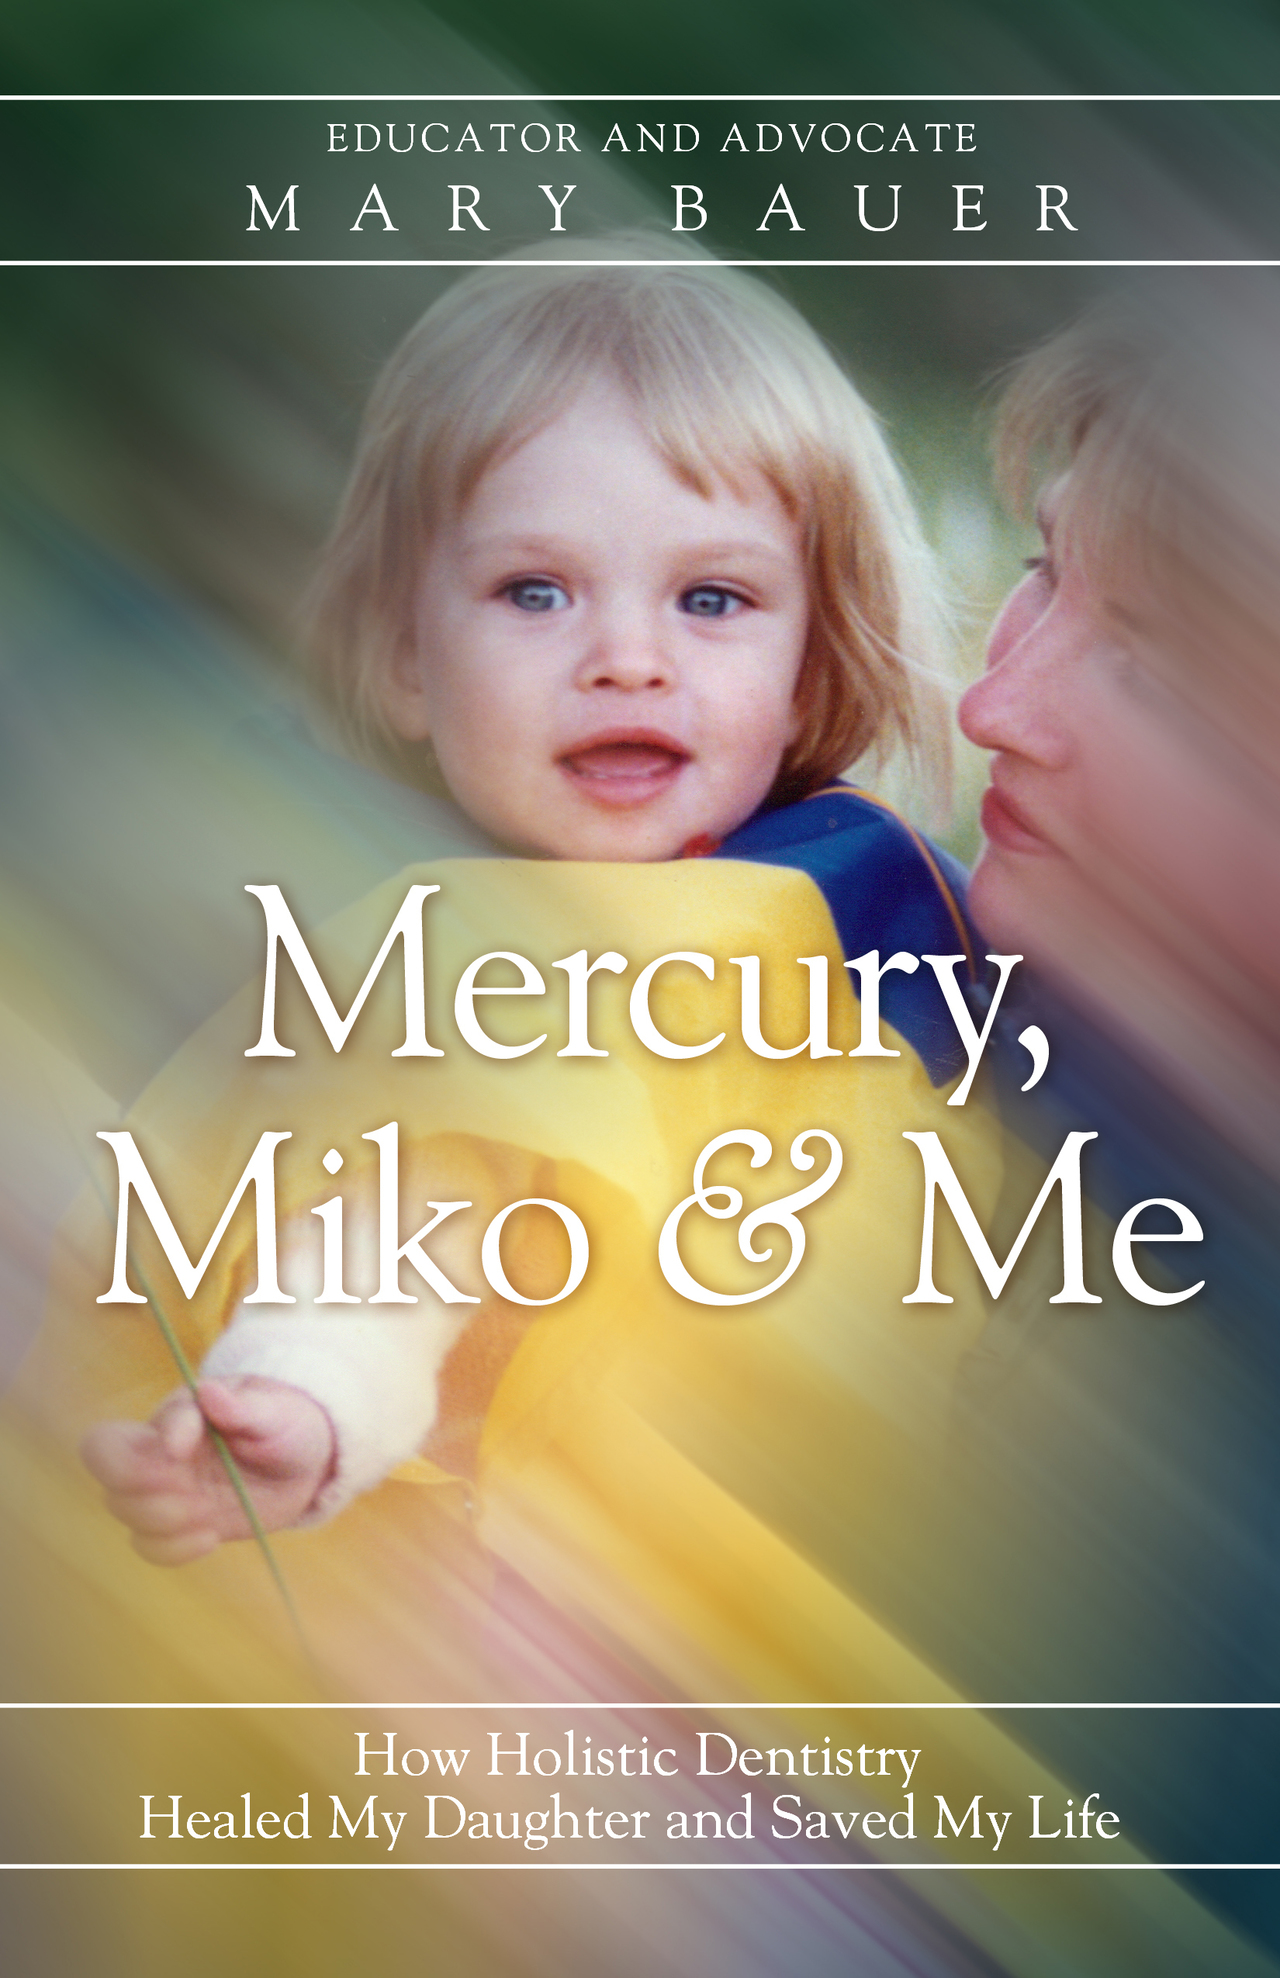 Mercury miko and me cover 300ppirgb